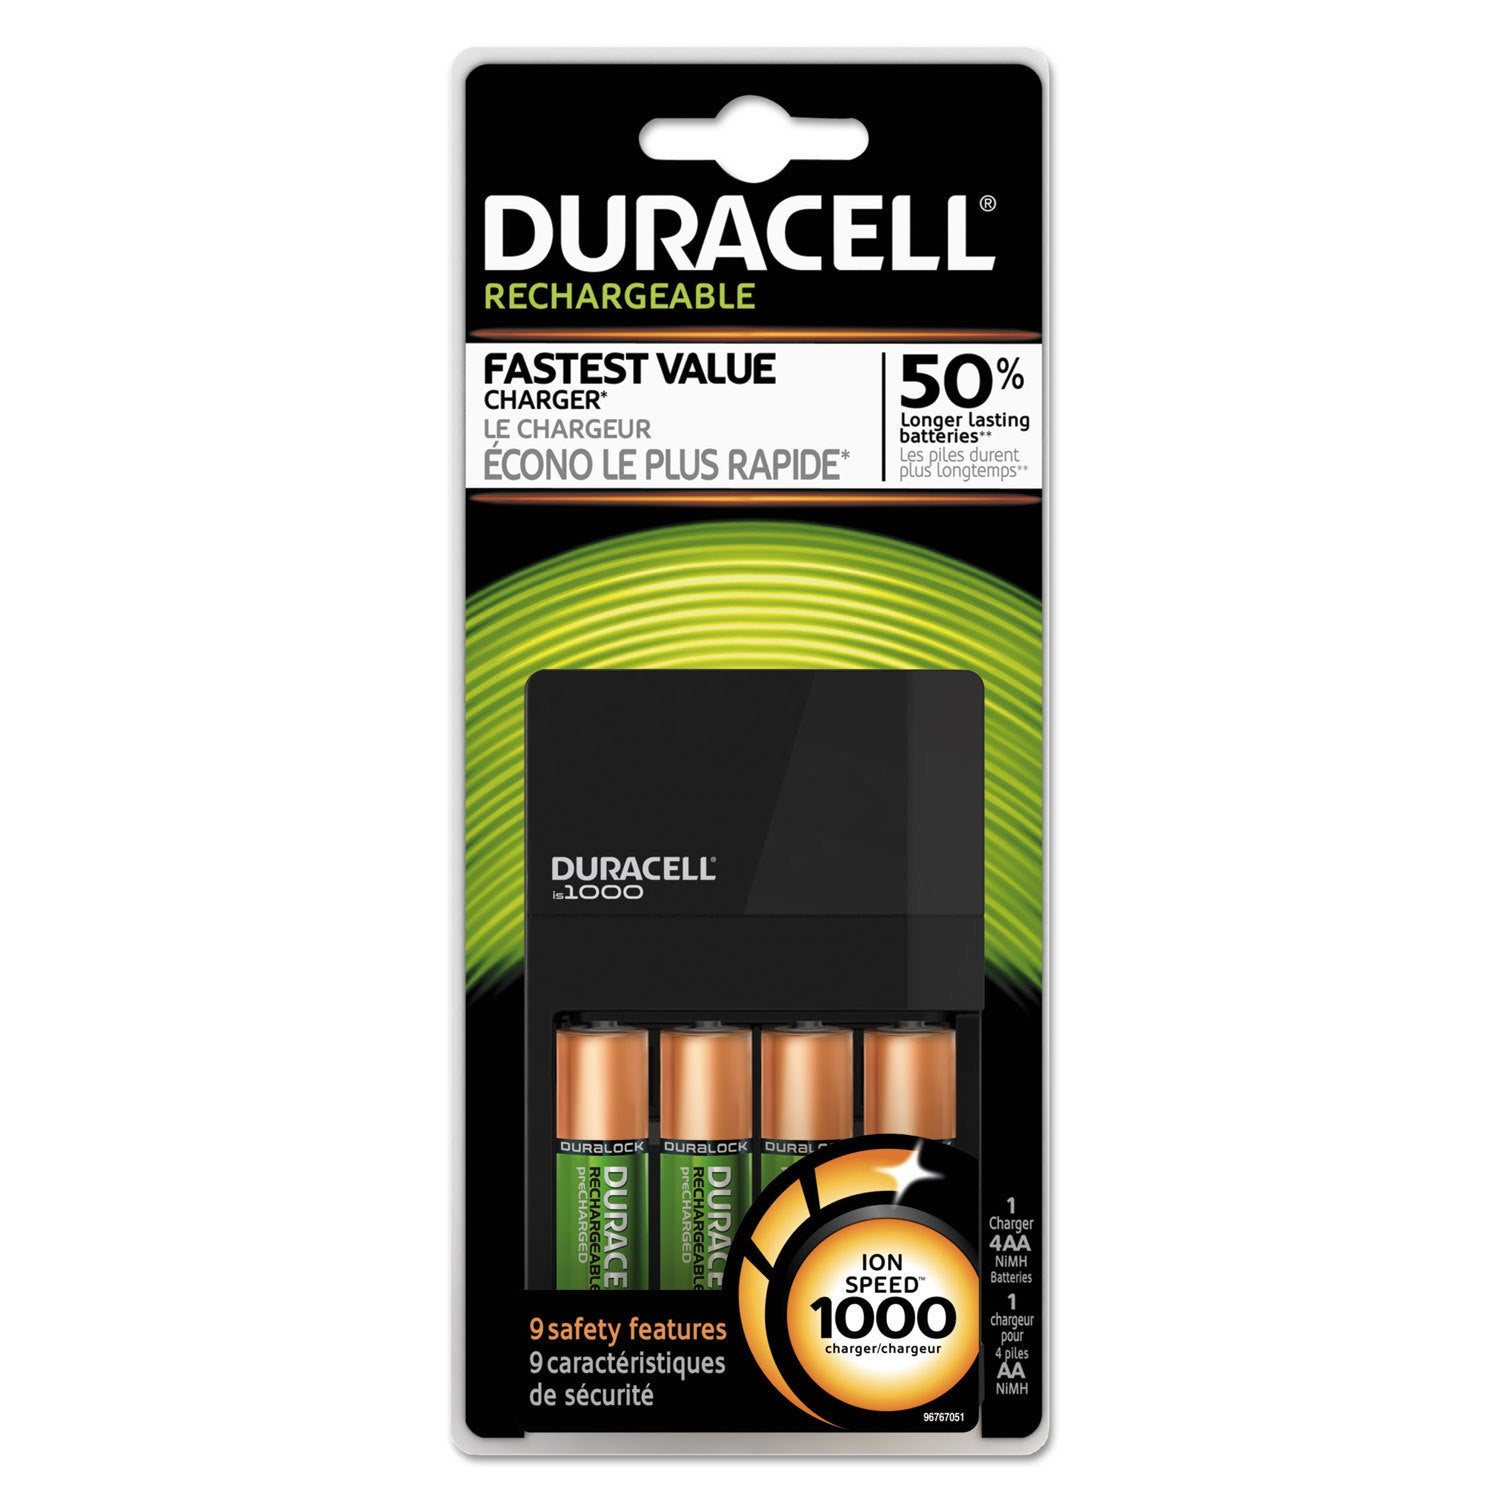 Duracell ION Speed 1000 Advanced Charger Includes 4 AA Ni...